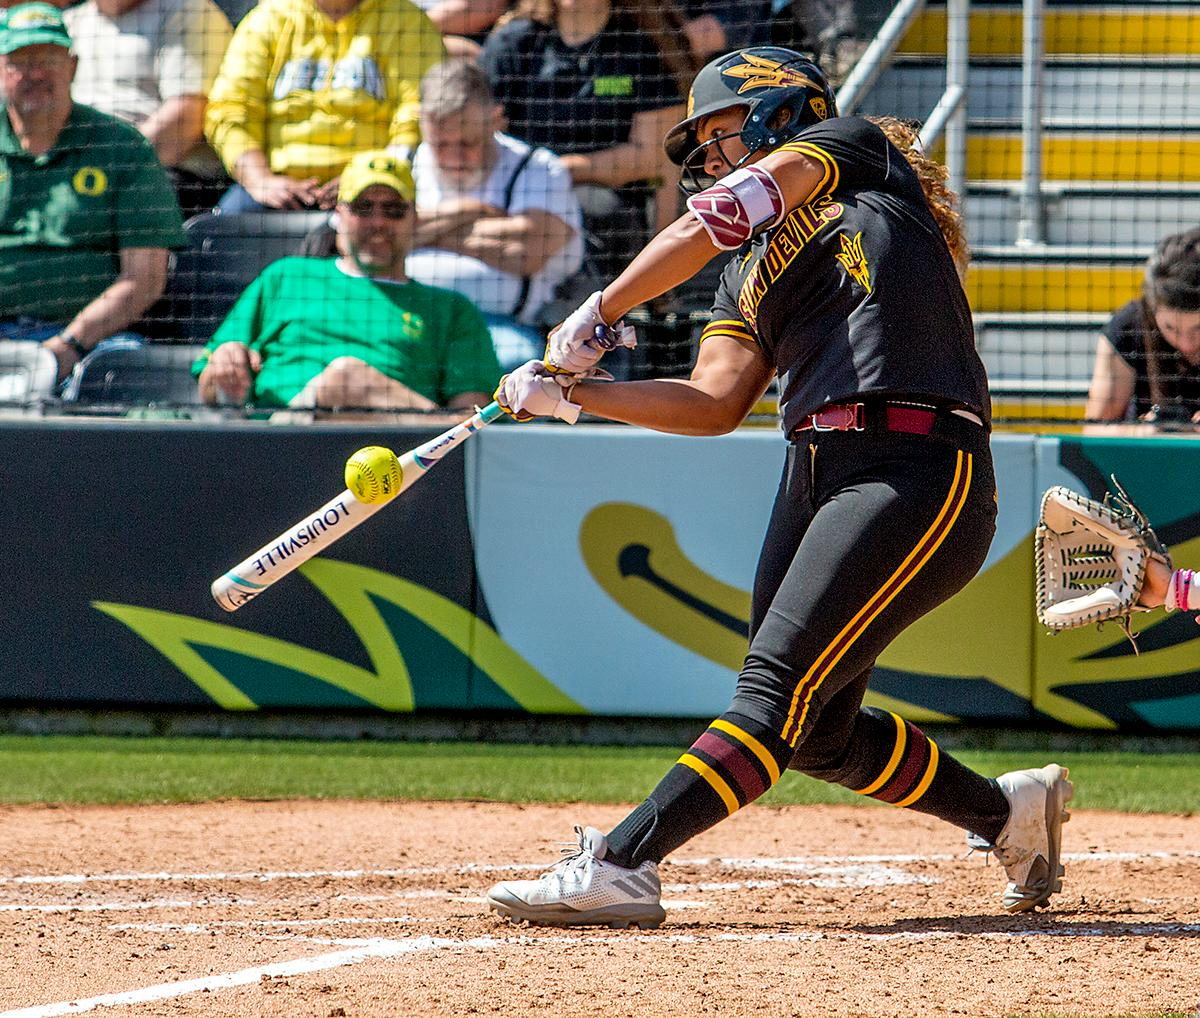 The Sun Devils' Ulufa Leilua (#9) connects with the ball. The Oregon Ducks Softball team took their third win over the Arizona Sun Devils, 1-0, in the final game of the weekends series that saw the game go into an eighth inning before the Duck?s Mia Camuso (#7) scored a hit allowing teammate Haley Cruse (#26) to run into home plate for a point. The Ducks are now 33-0 this season and will next play a double header against Portland State on Tuesday, April 4 at Jane Sanders Stadium. Photo by August Frank, Oregon News Lab